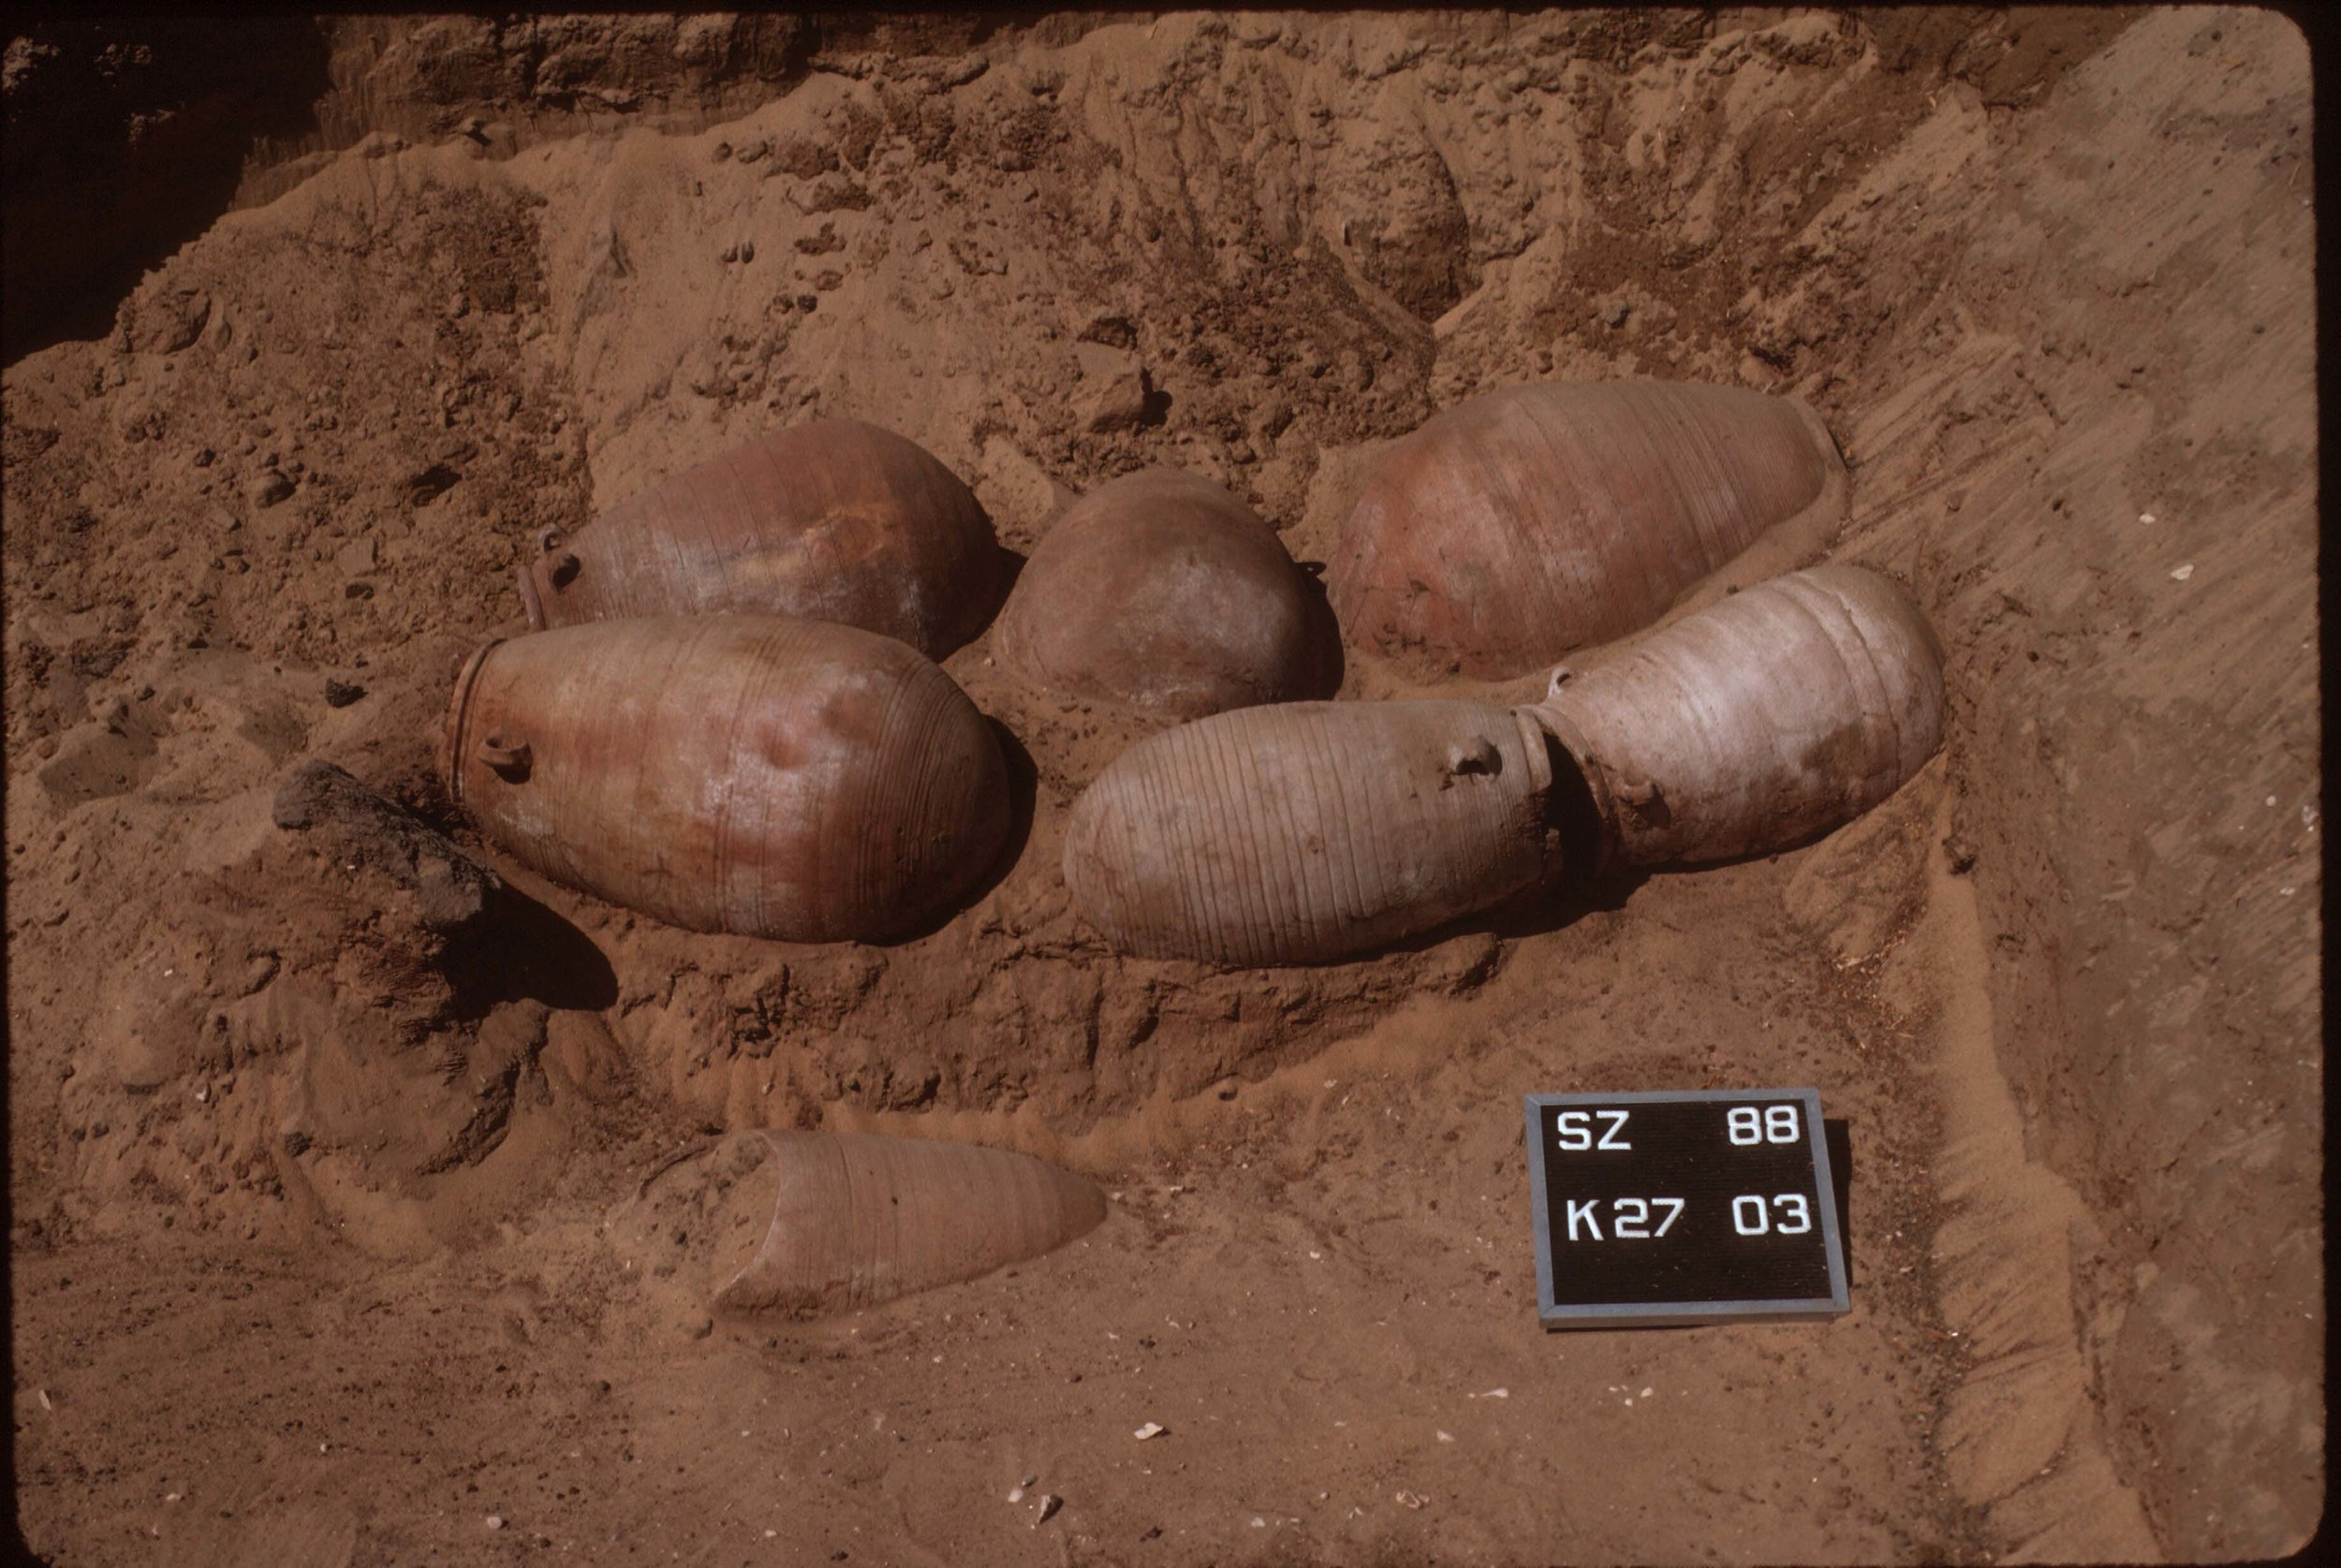 Fig. 5. Large pottery vessels containing ibis burials in situ, 1988. Photo: David O'Connor © North Abydos Expedition (formerly Penn-Yale-IFA), courtesy of the Penn Museum